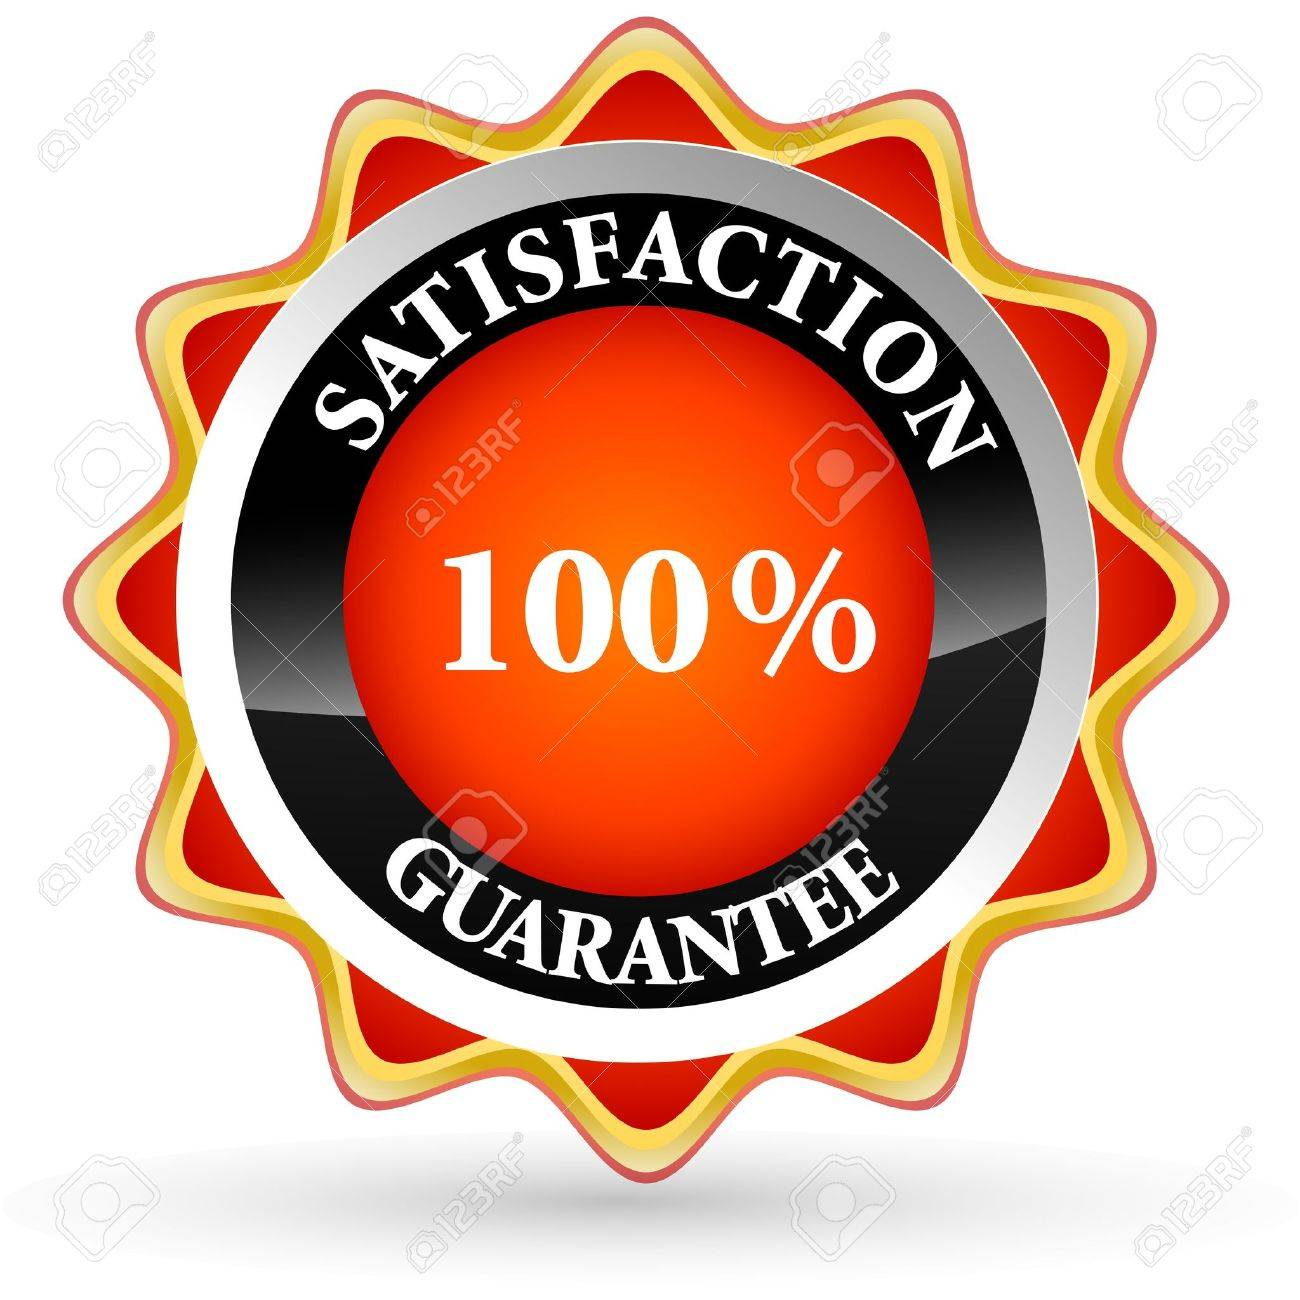 illustration of 100% satisfaction tag on white background - 9438460